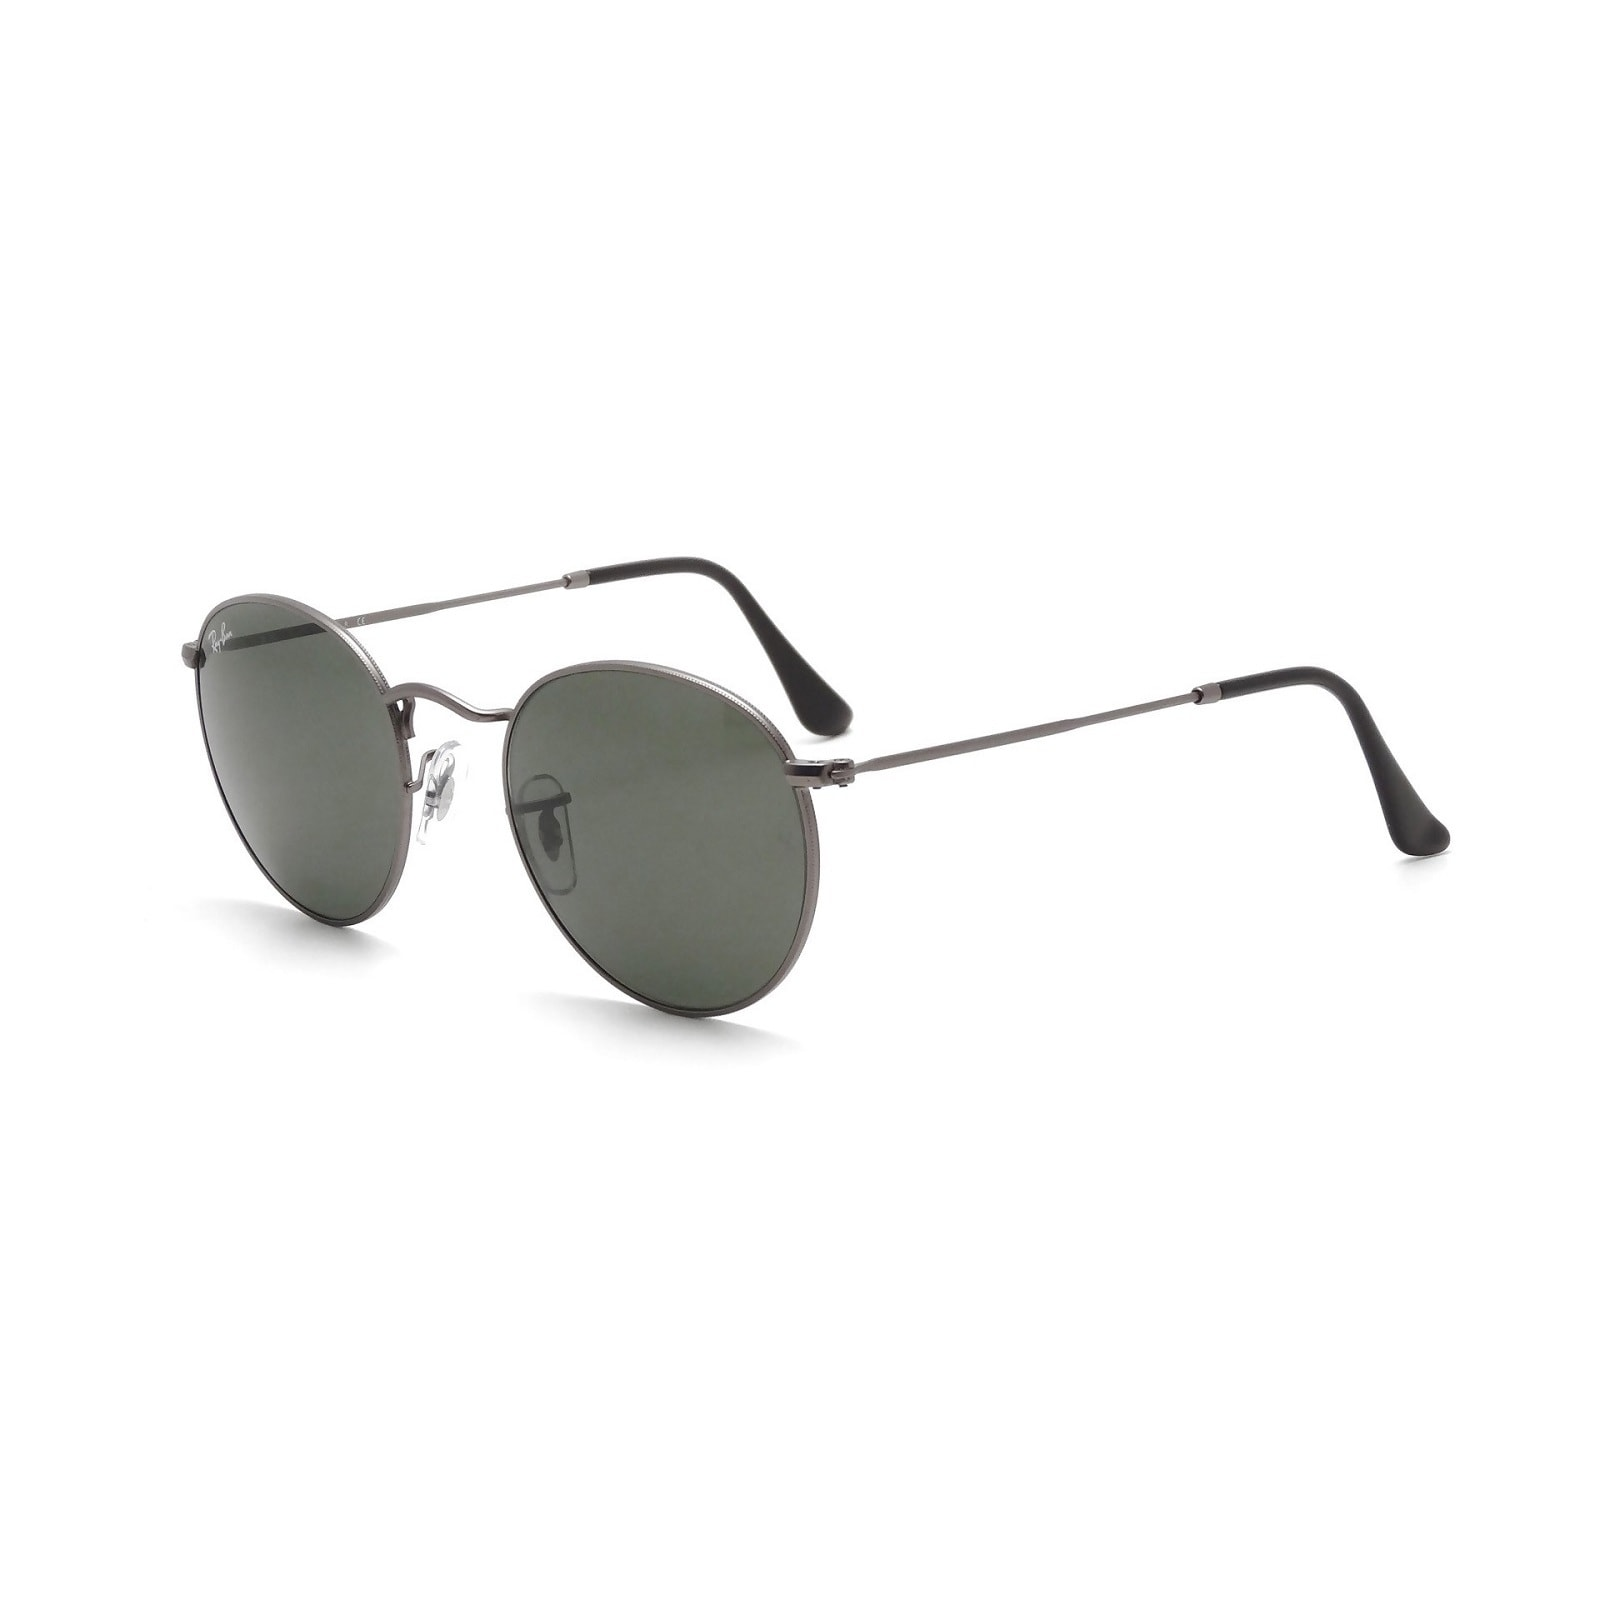 245ac12952 Shop Ray-Ban RB3447 029 Round Gunmetal Frame Green Classic 50mm Lens  Sunglasses - Free Shipping Today - Overstock - 14328101